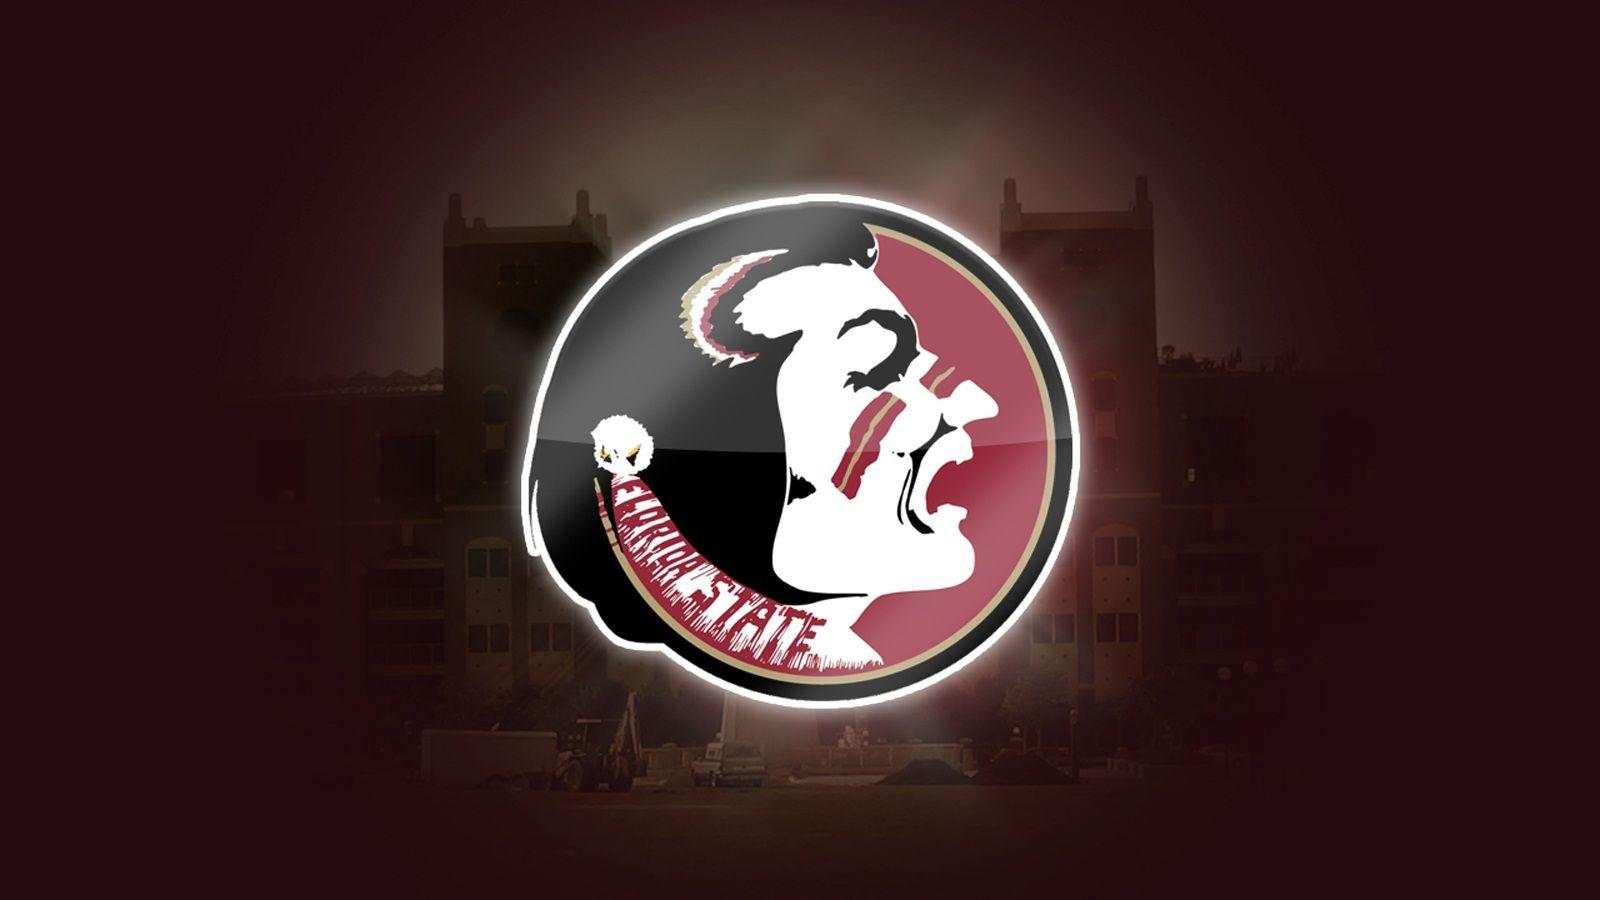 Caveman Show Fsu : Florida state university wallpapers wallpaper cave